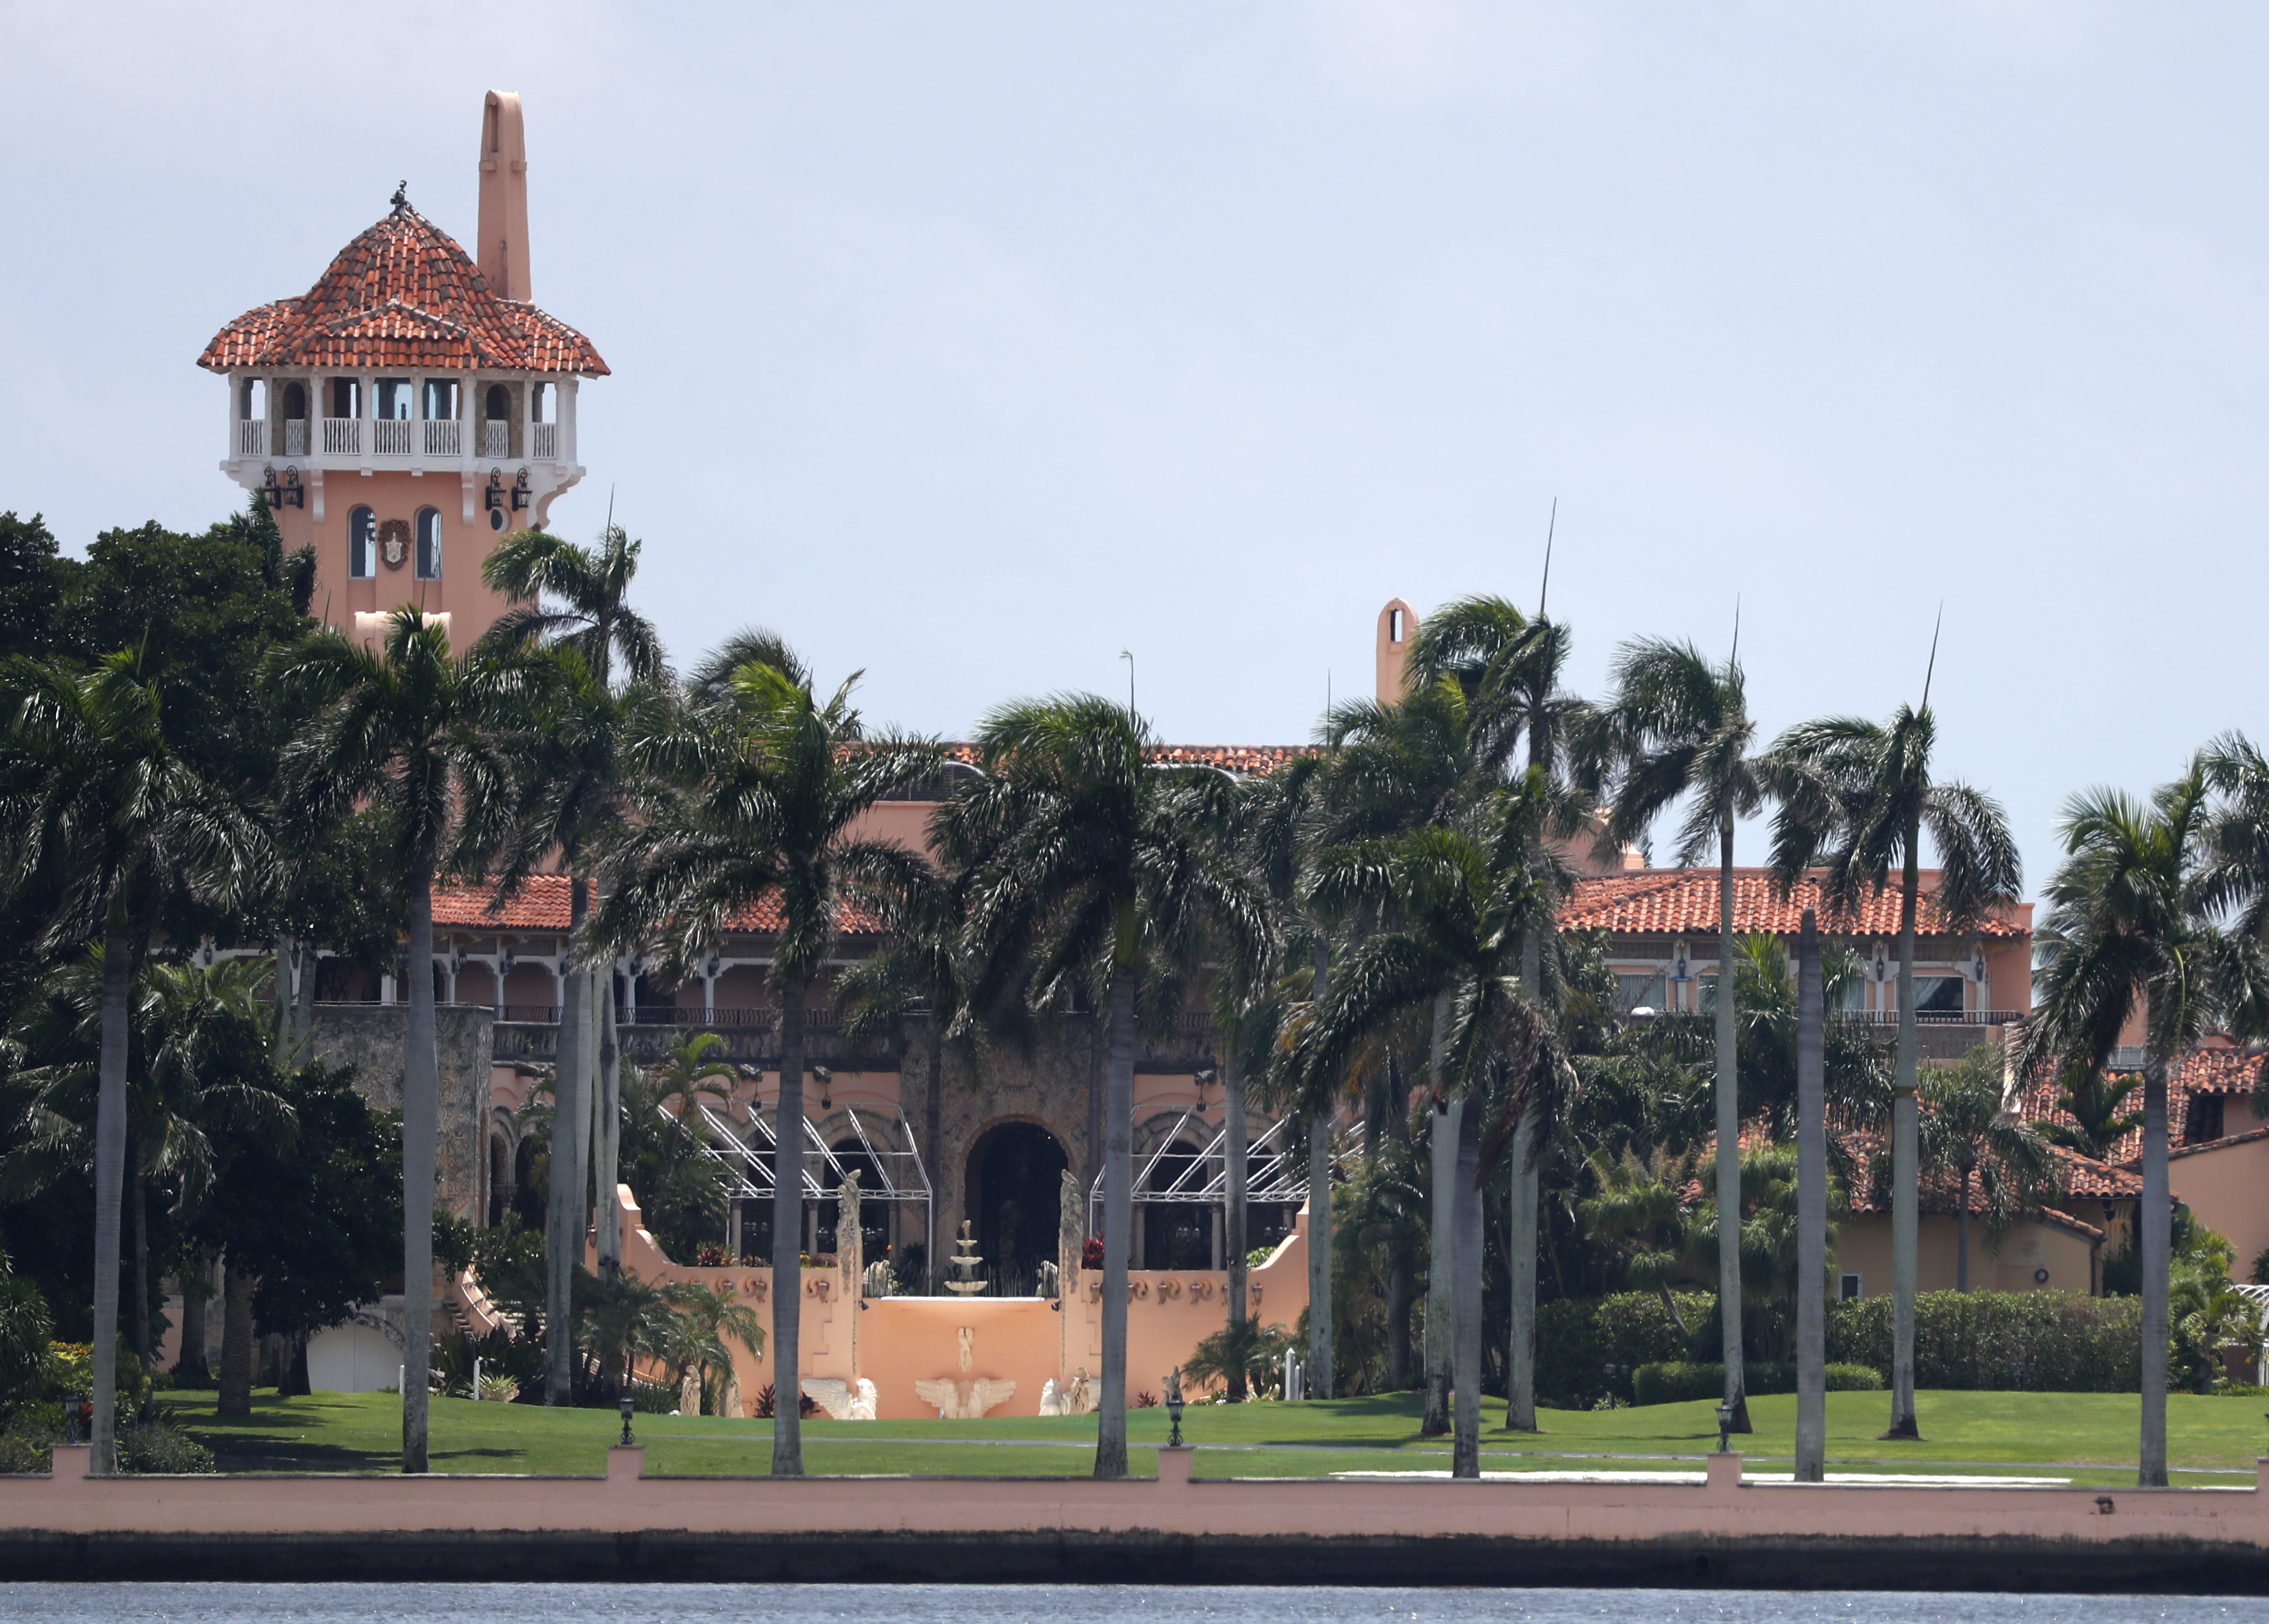 CAIR, SPLC pressure Mar-a-Lago to drop 'hate group' event as conservatives push back